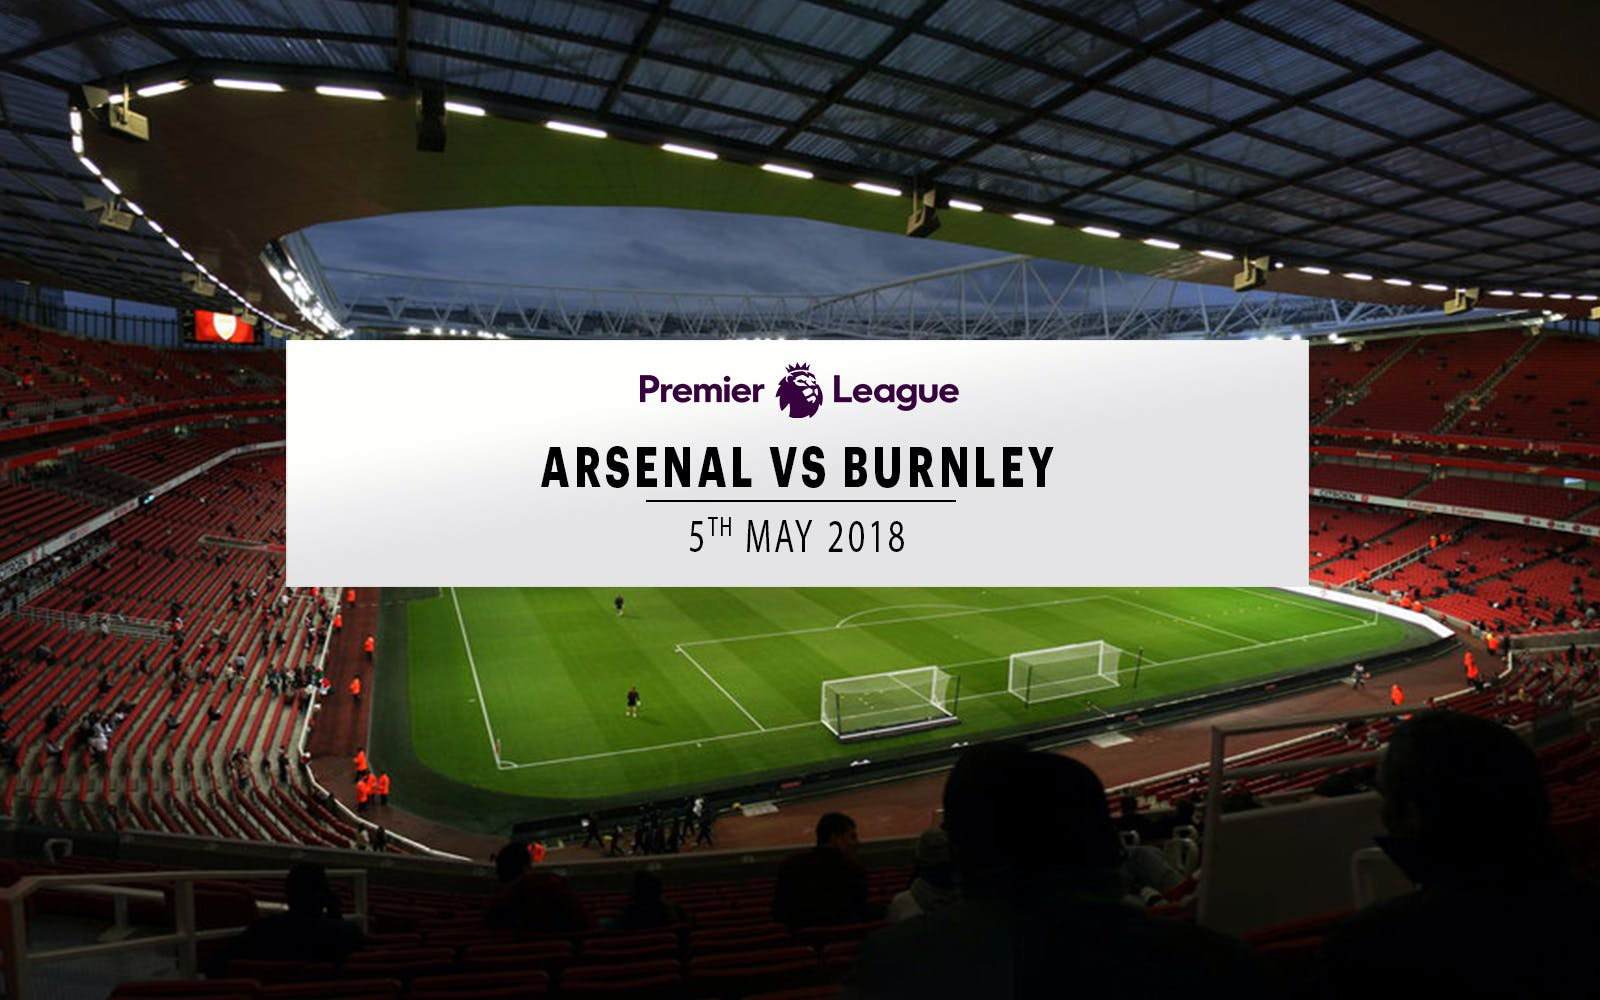 arsenal vs burnley - 5th may 2018-1